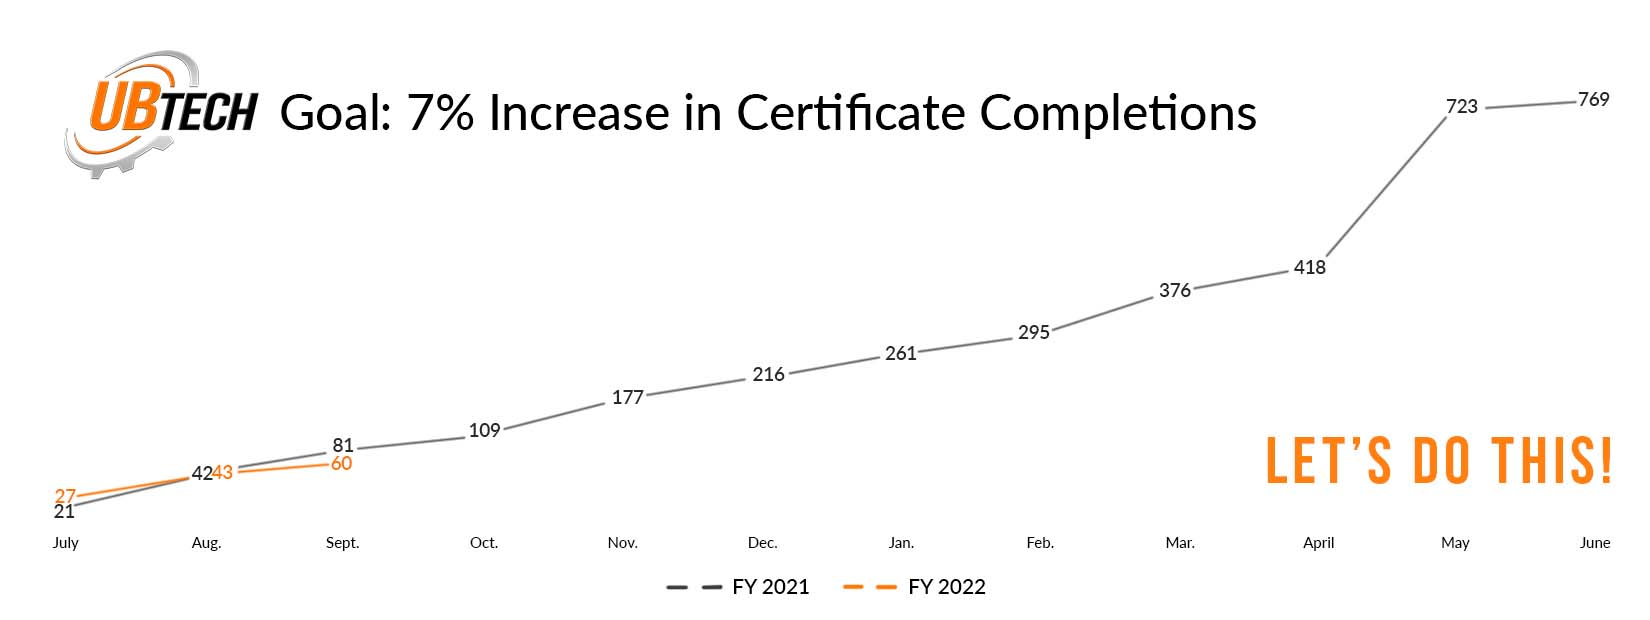 Goal: 7% Increase in Certificate Completions